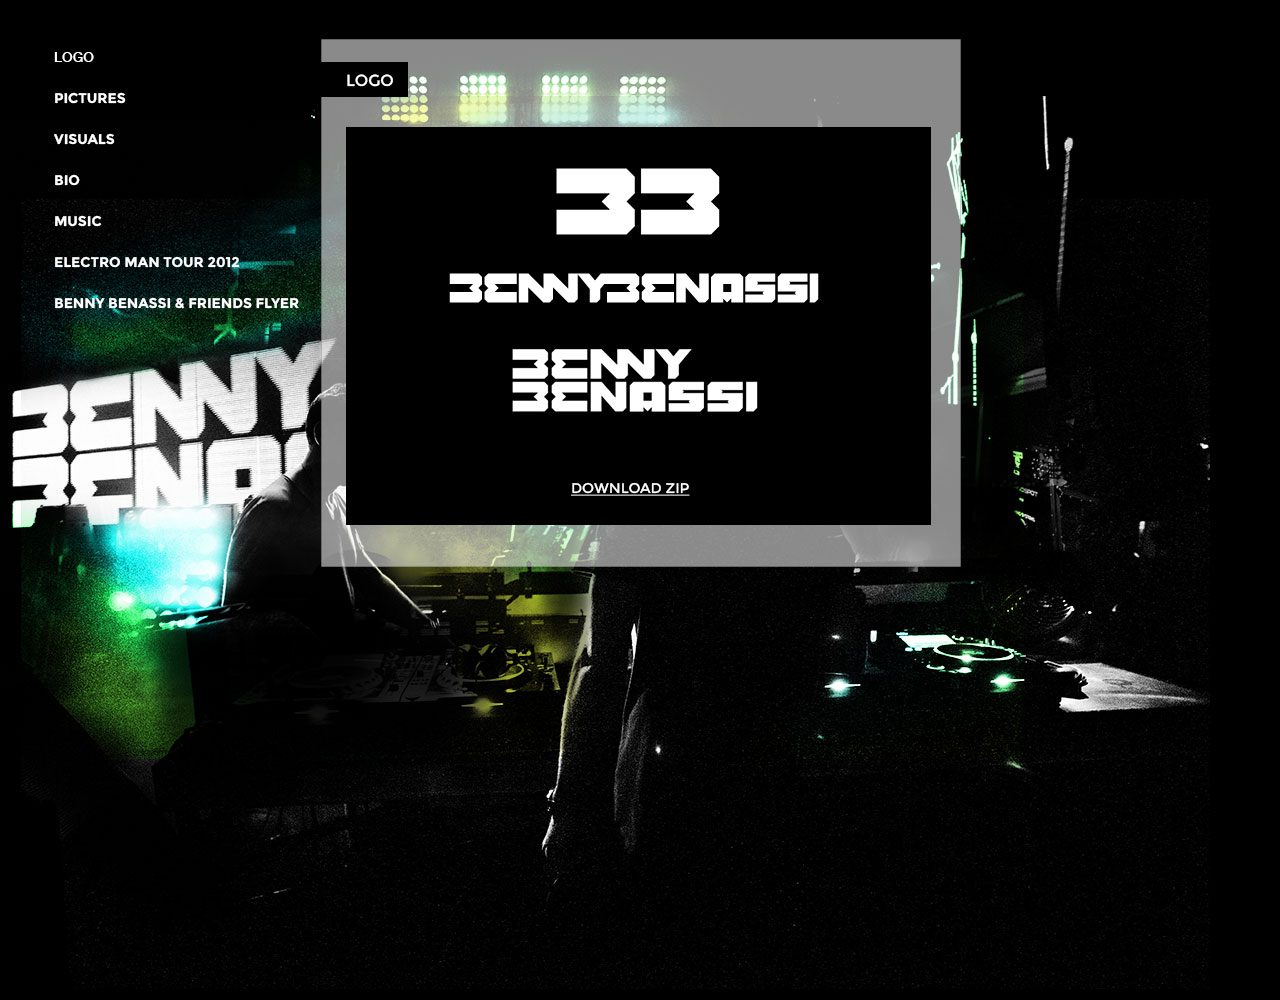 Benny_Benassi_Press_internal4